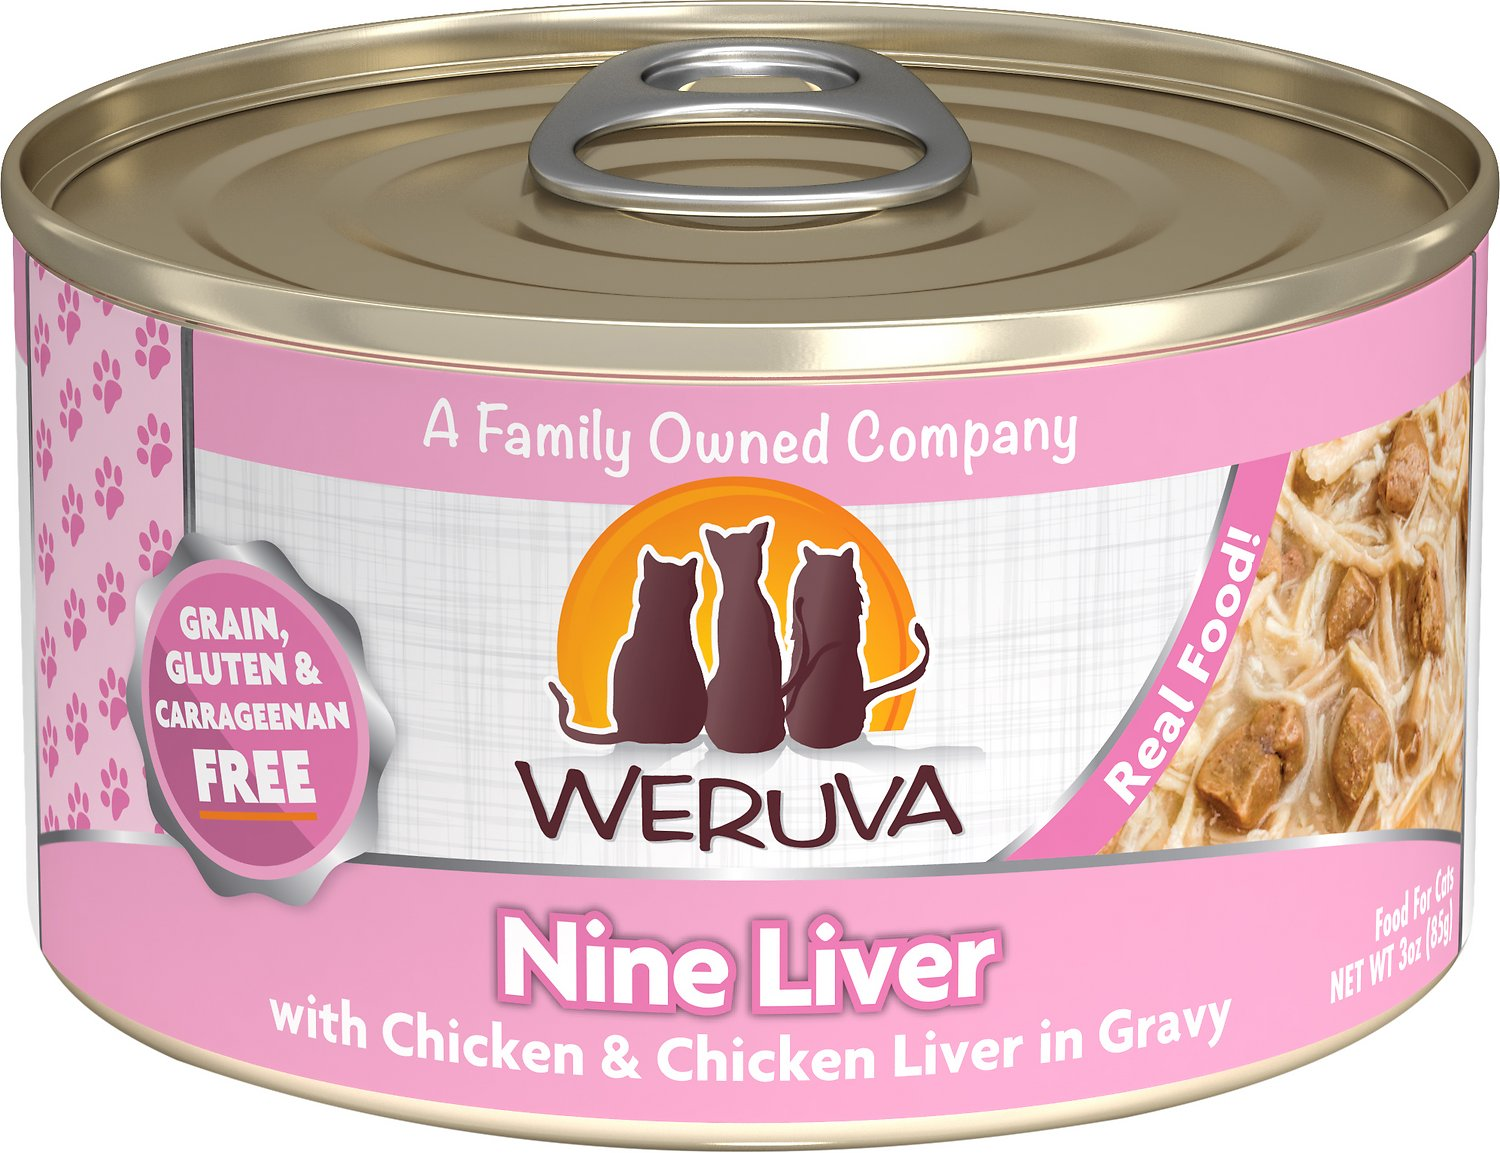 Weruva Cat Classic Nine Liver with Chicken & Chicken Liver in Gravy Grain-Free Wet Cat Food, 3-oz